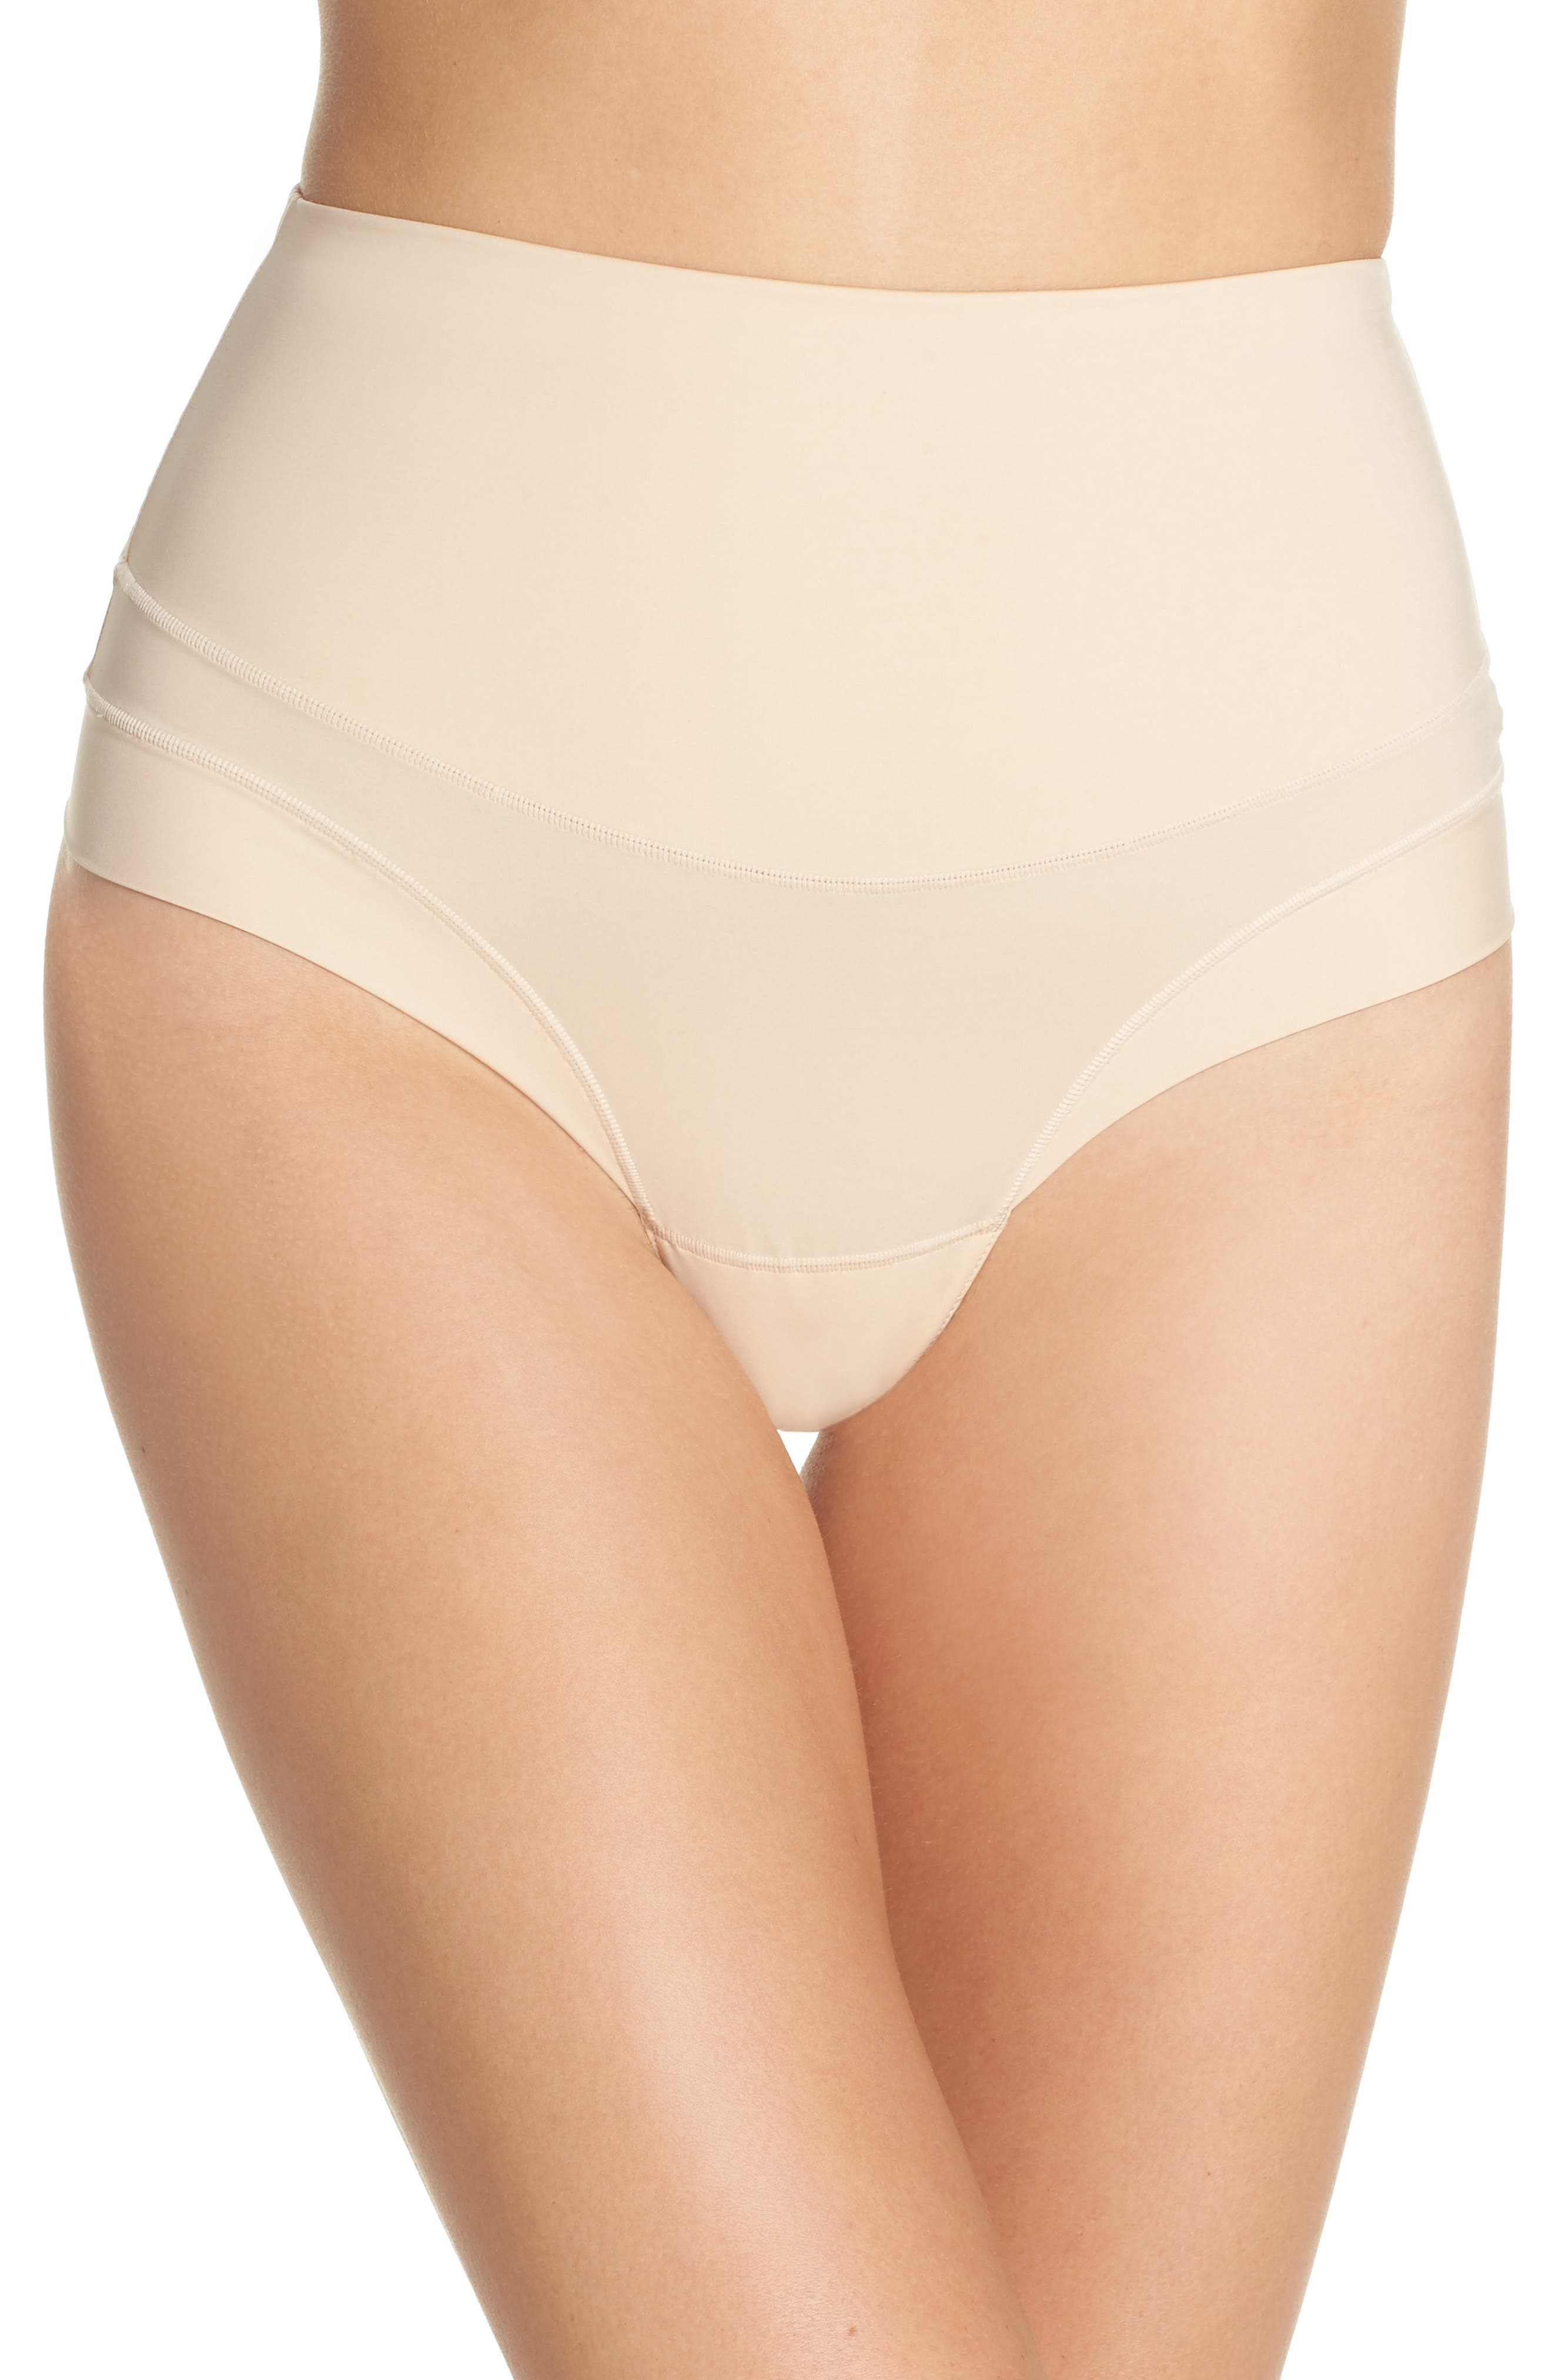 Tummie Tamers Mid Waist Thong,                         Main,                         color, Frappe